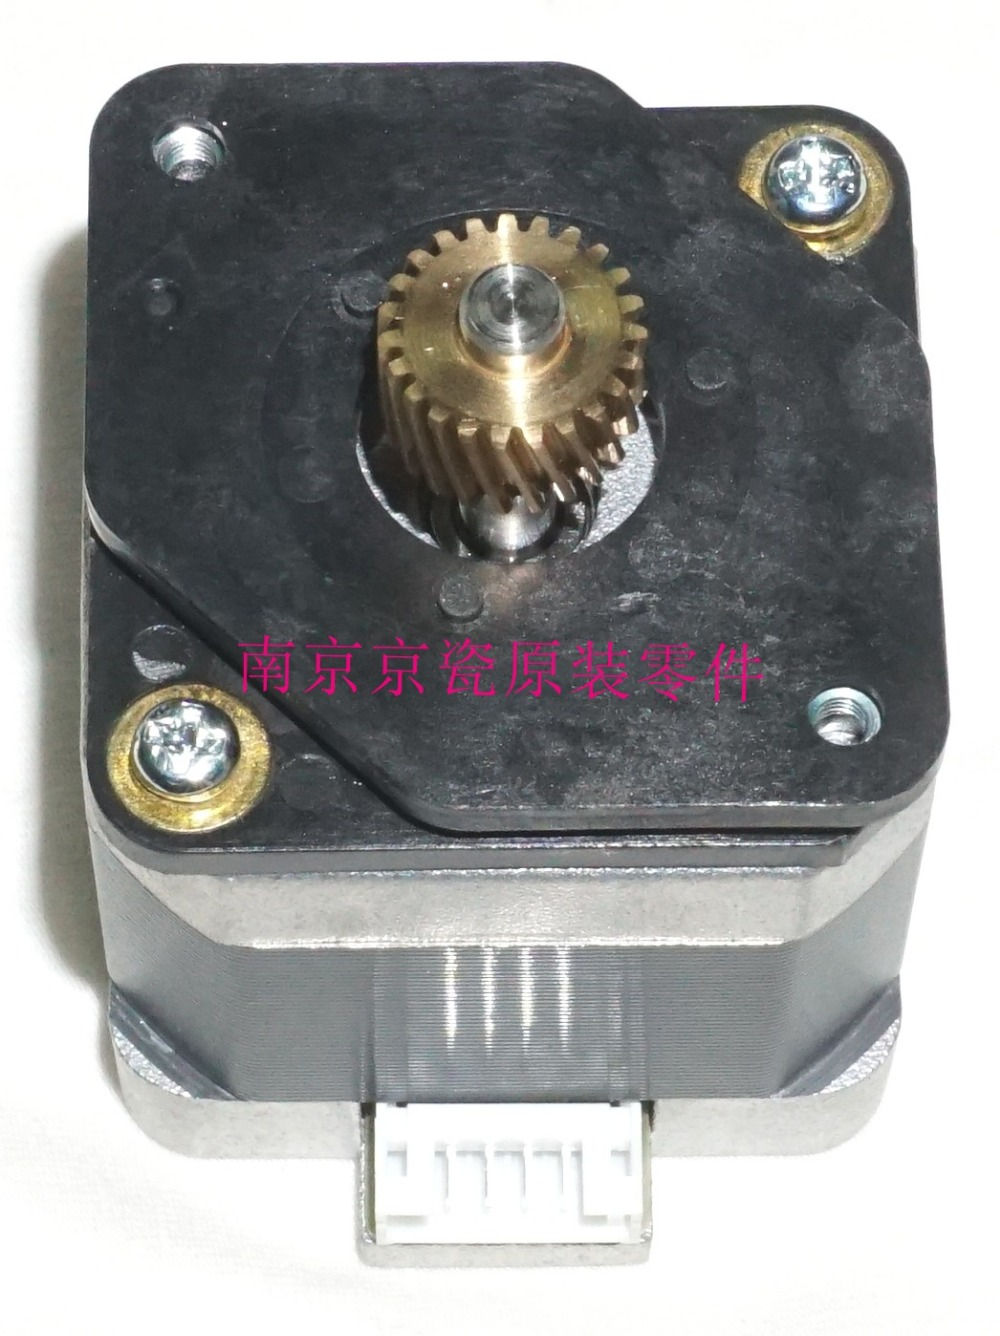 New Original Kyocera DP-771 DP-772 303M494180 MOTOR REGISTRATION for:TA3500i-8001i 3050ci-7551ci baby nice бортик слоник элит бязь люкс baby nice голубой